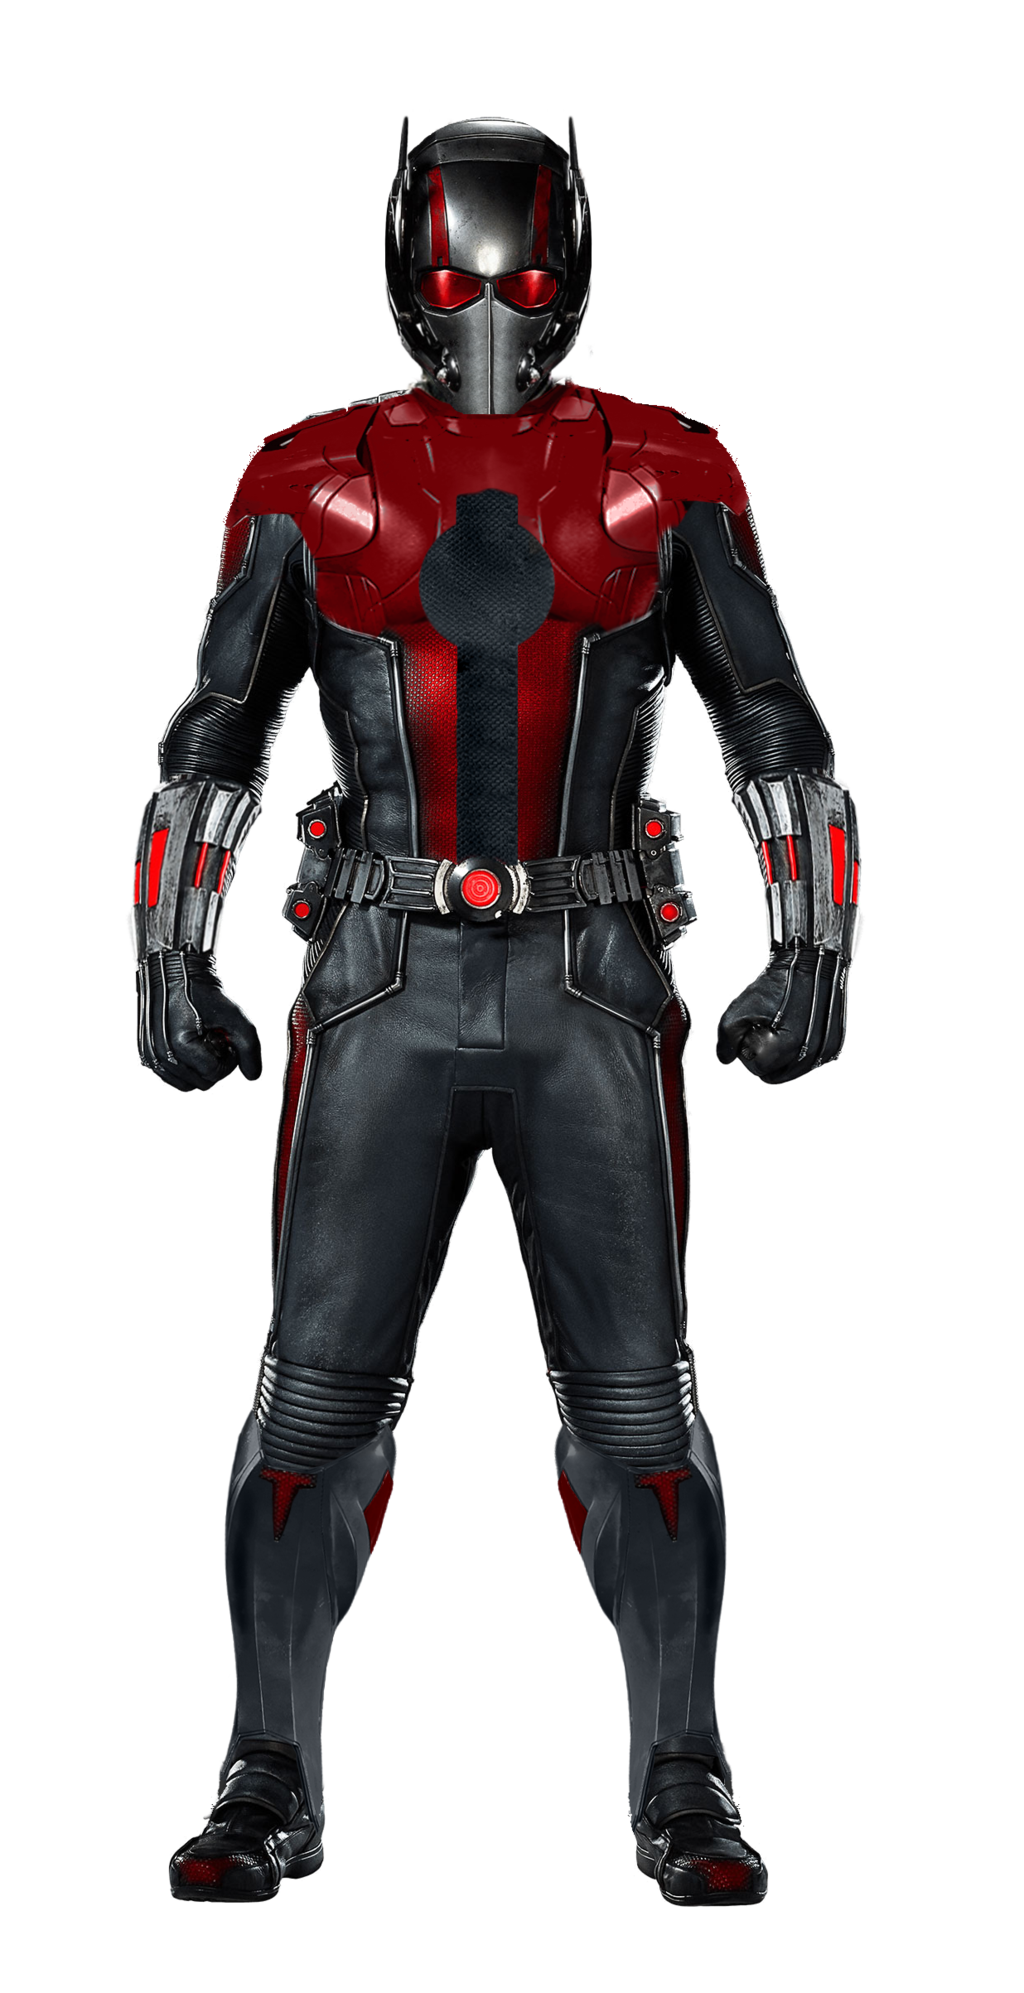 Antman drawing anthony. Ant man png transparent